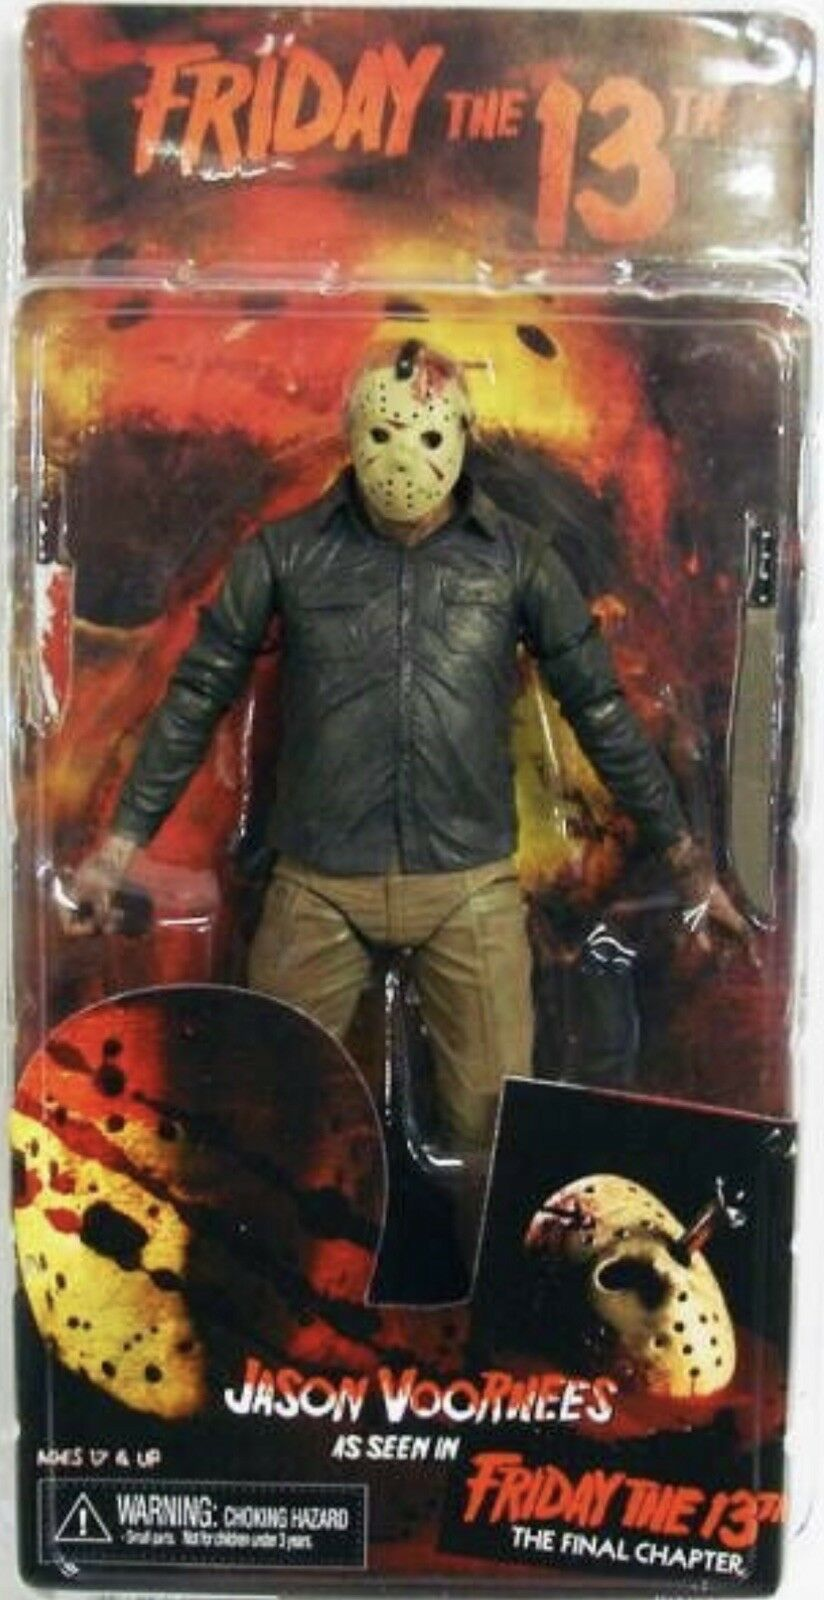 NECA Friday The 13th il capitolo finale Jason Voorhees HORROR 6 Pollici Figura SIGILLATO